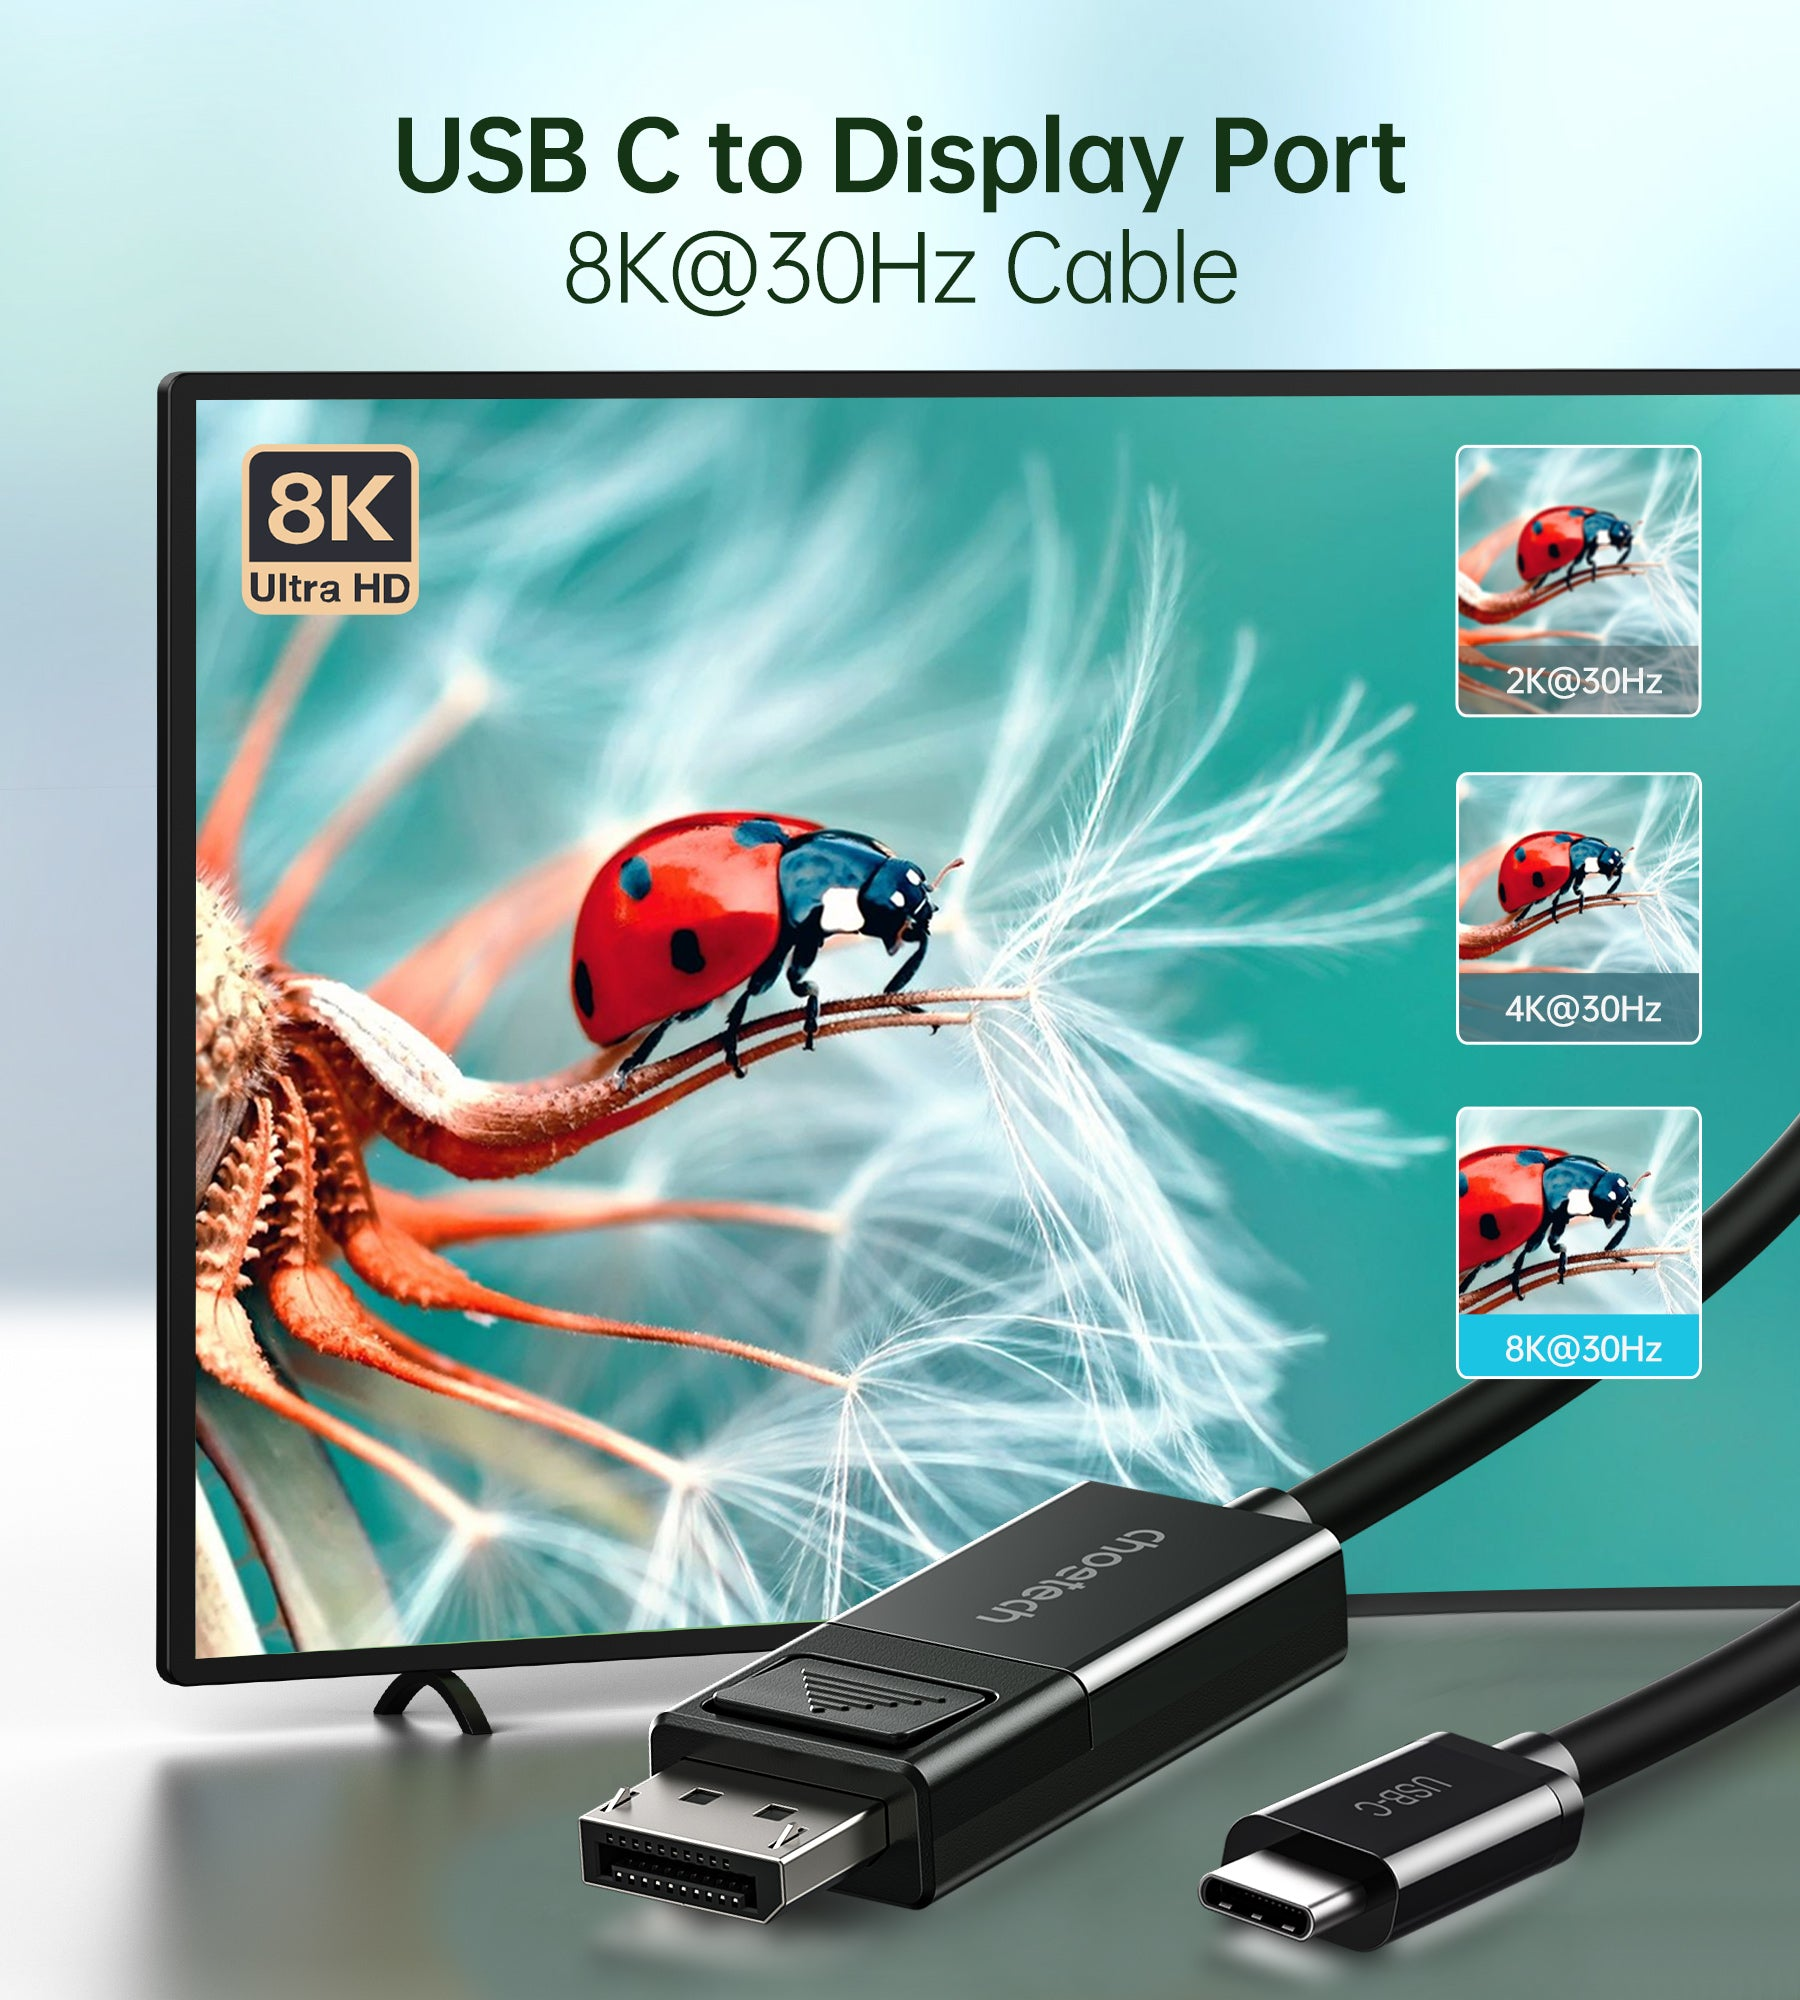 XCP-1803 Choetech USB C to DisplayPort Cable, 8K@30Hz 6ft DisplayPort to USB C Cable, Thunderbolt 3 to DisplayPort Two-Way